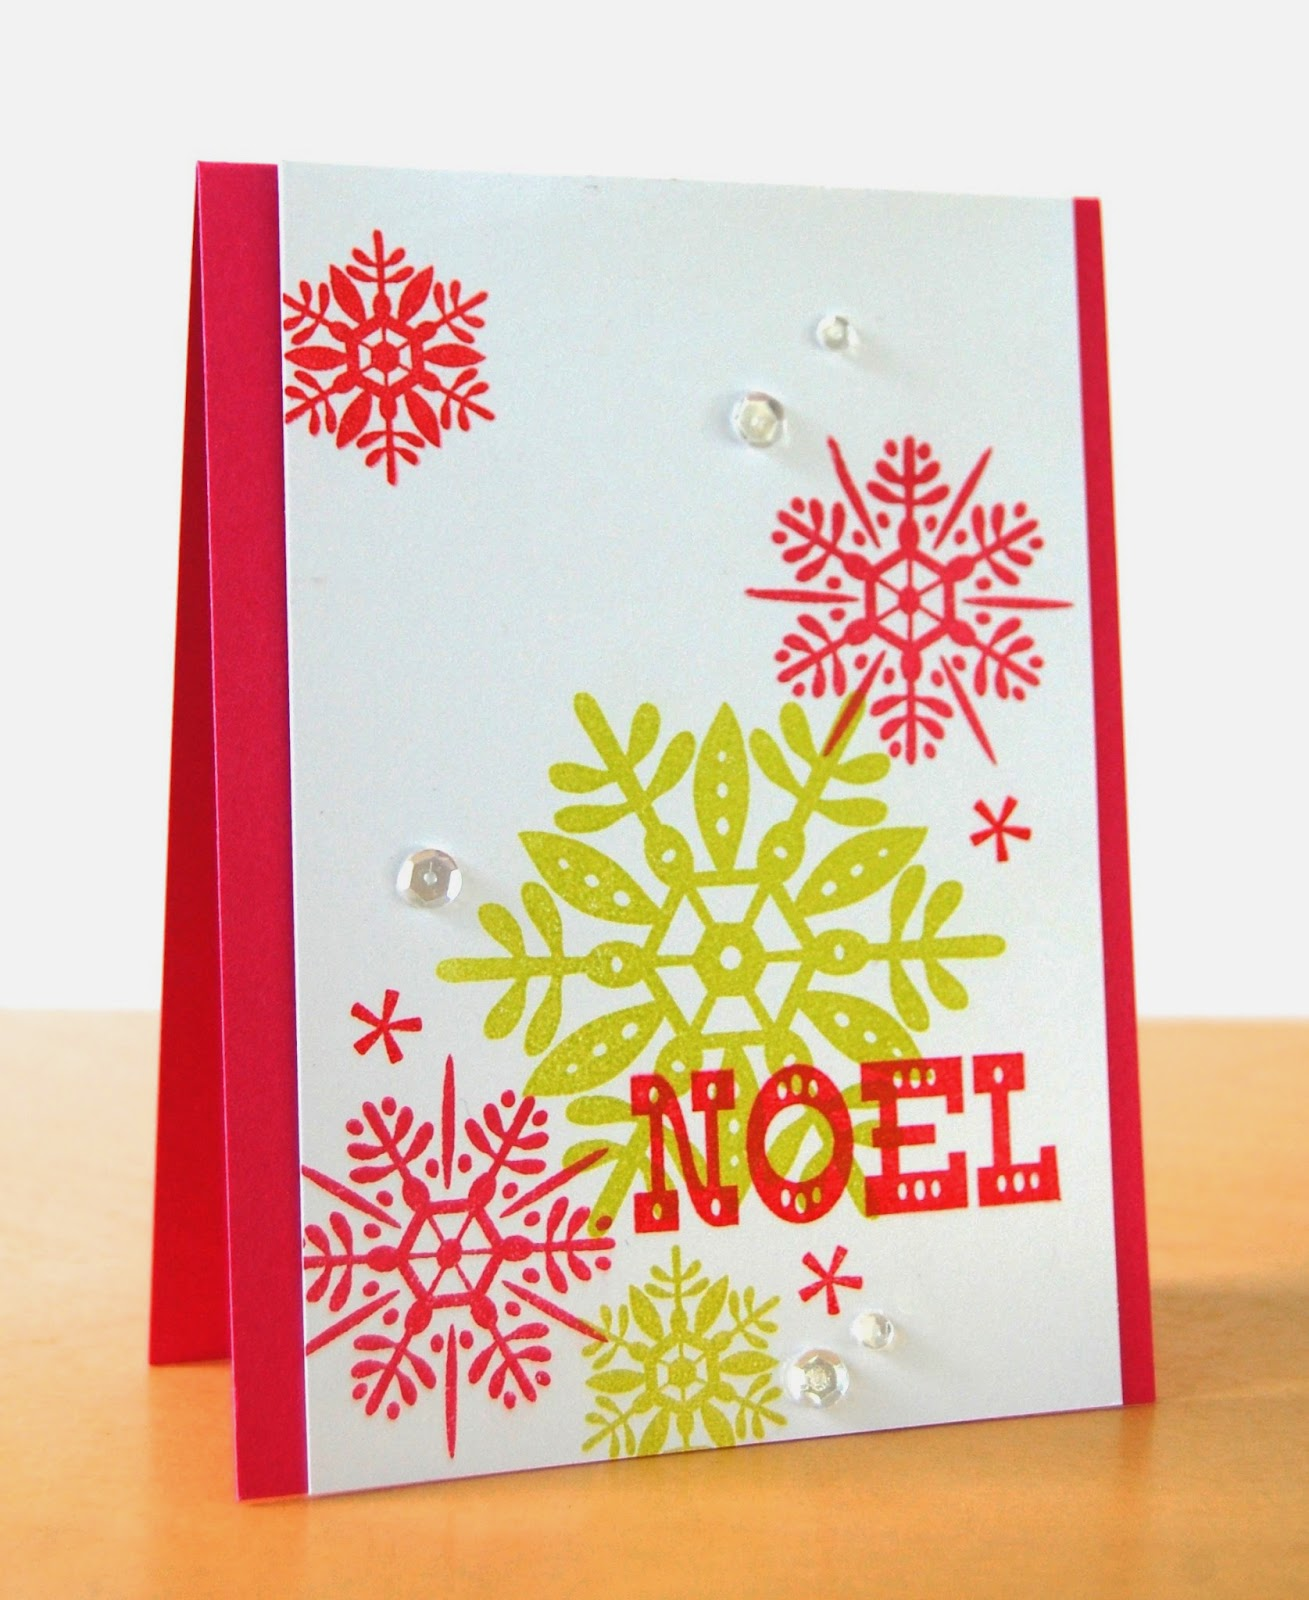 Stamping lightly noel avery elle i trimmed a panel of white card stock and stamped the snowflakes and tiny stars with avery elles lemon grass raspberry and cherry pigment ink m4hsunfo